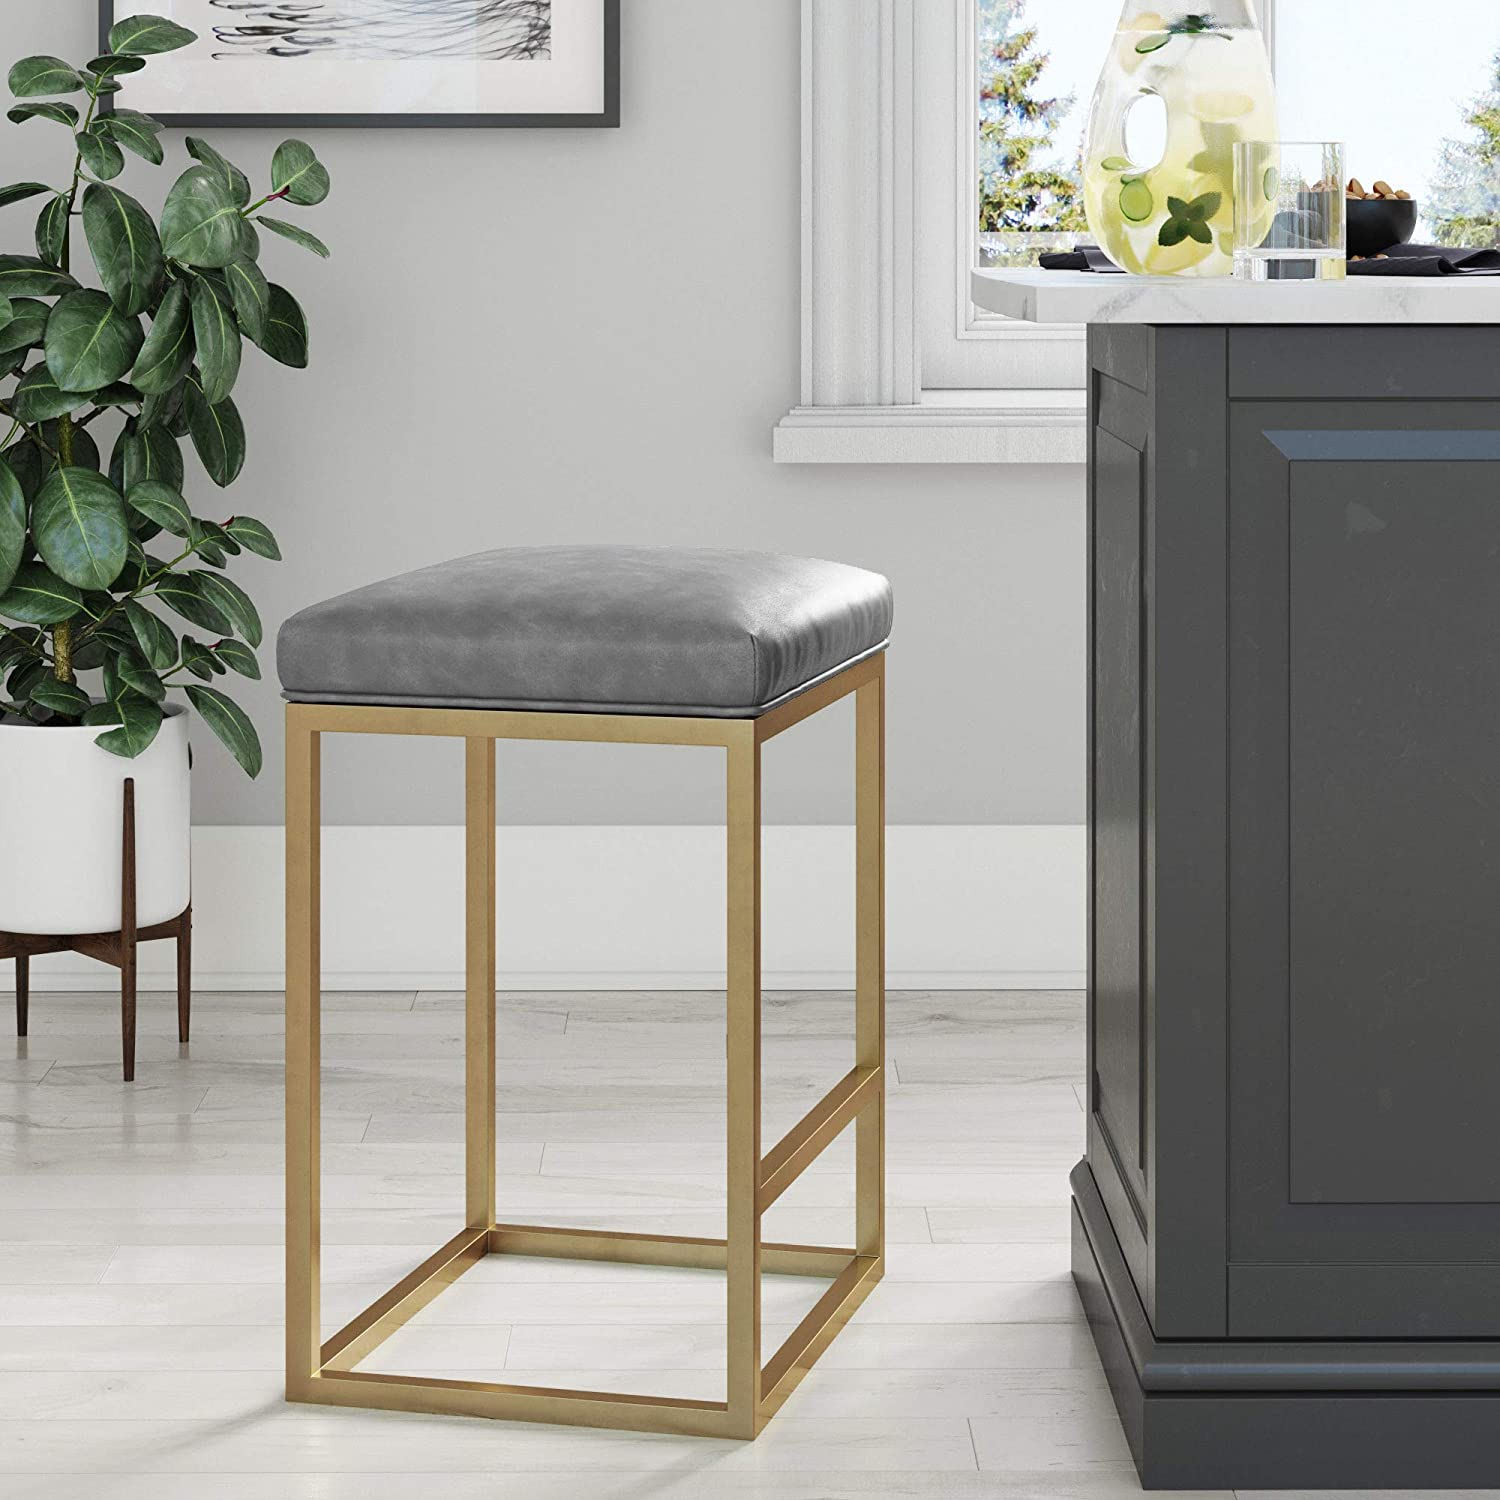 Cool Nathan James 22103 Nelson Bar Stool With Leather Cushion And Metal Base 24 Gray Gold Bralicious Painted Fabric Chair Ideas Braliciousco